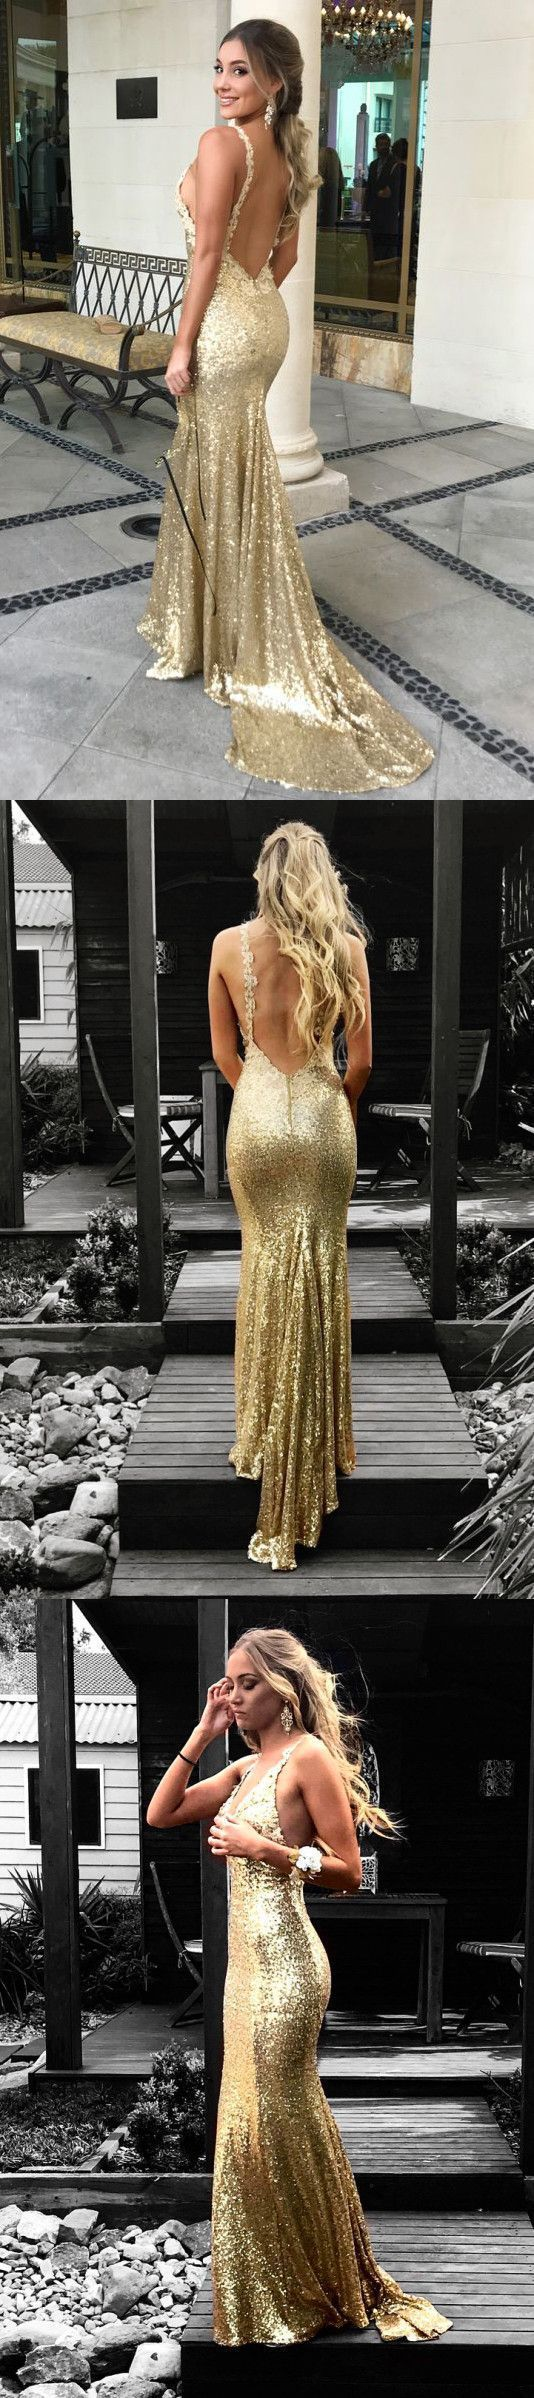 2018 Luxury Bling Sparkle Prom Dress, Sequin Prom Dress, Mermaid Off Shoulder Sweep Train Gold Backless Prom Dress by Miss Zhu Bridal, $159.00 USD